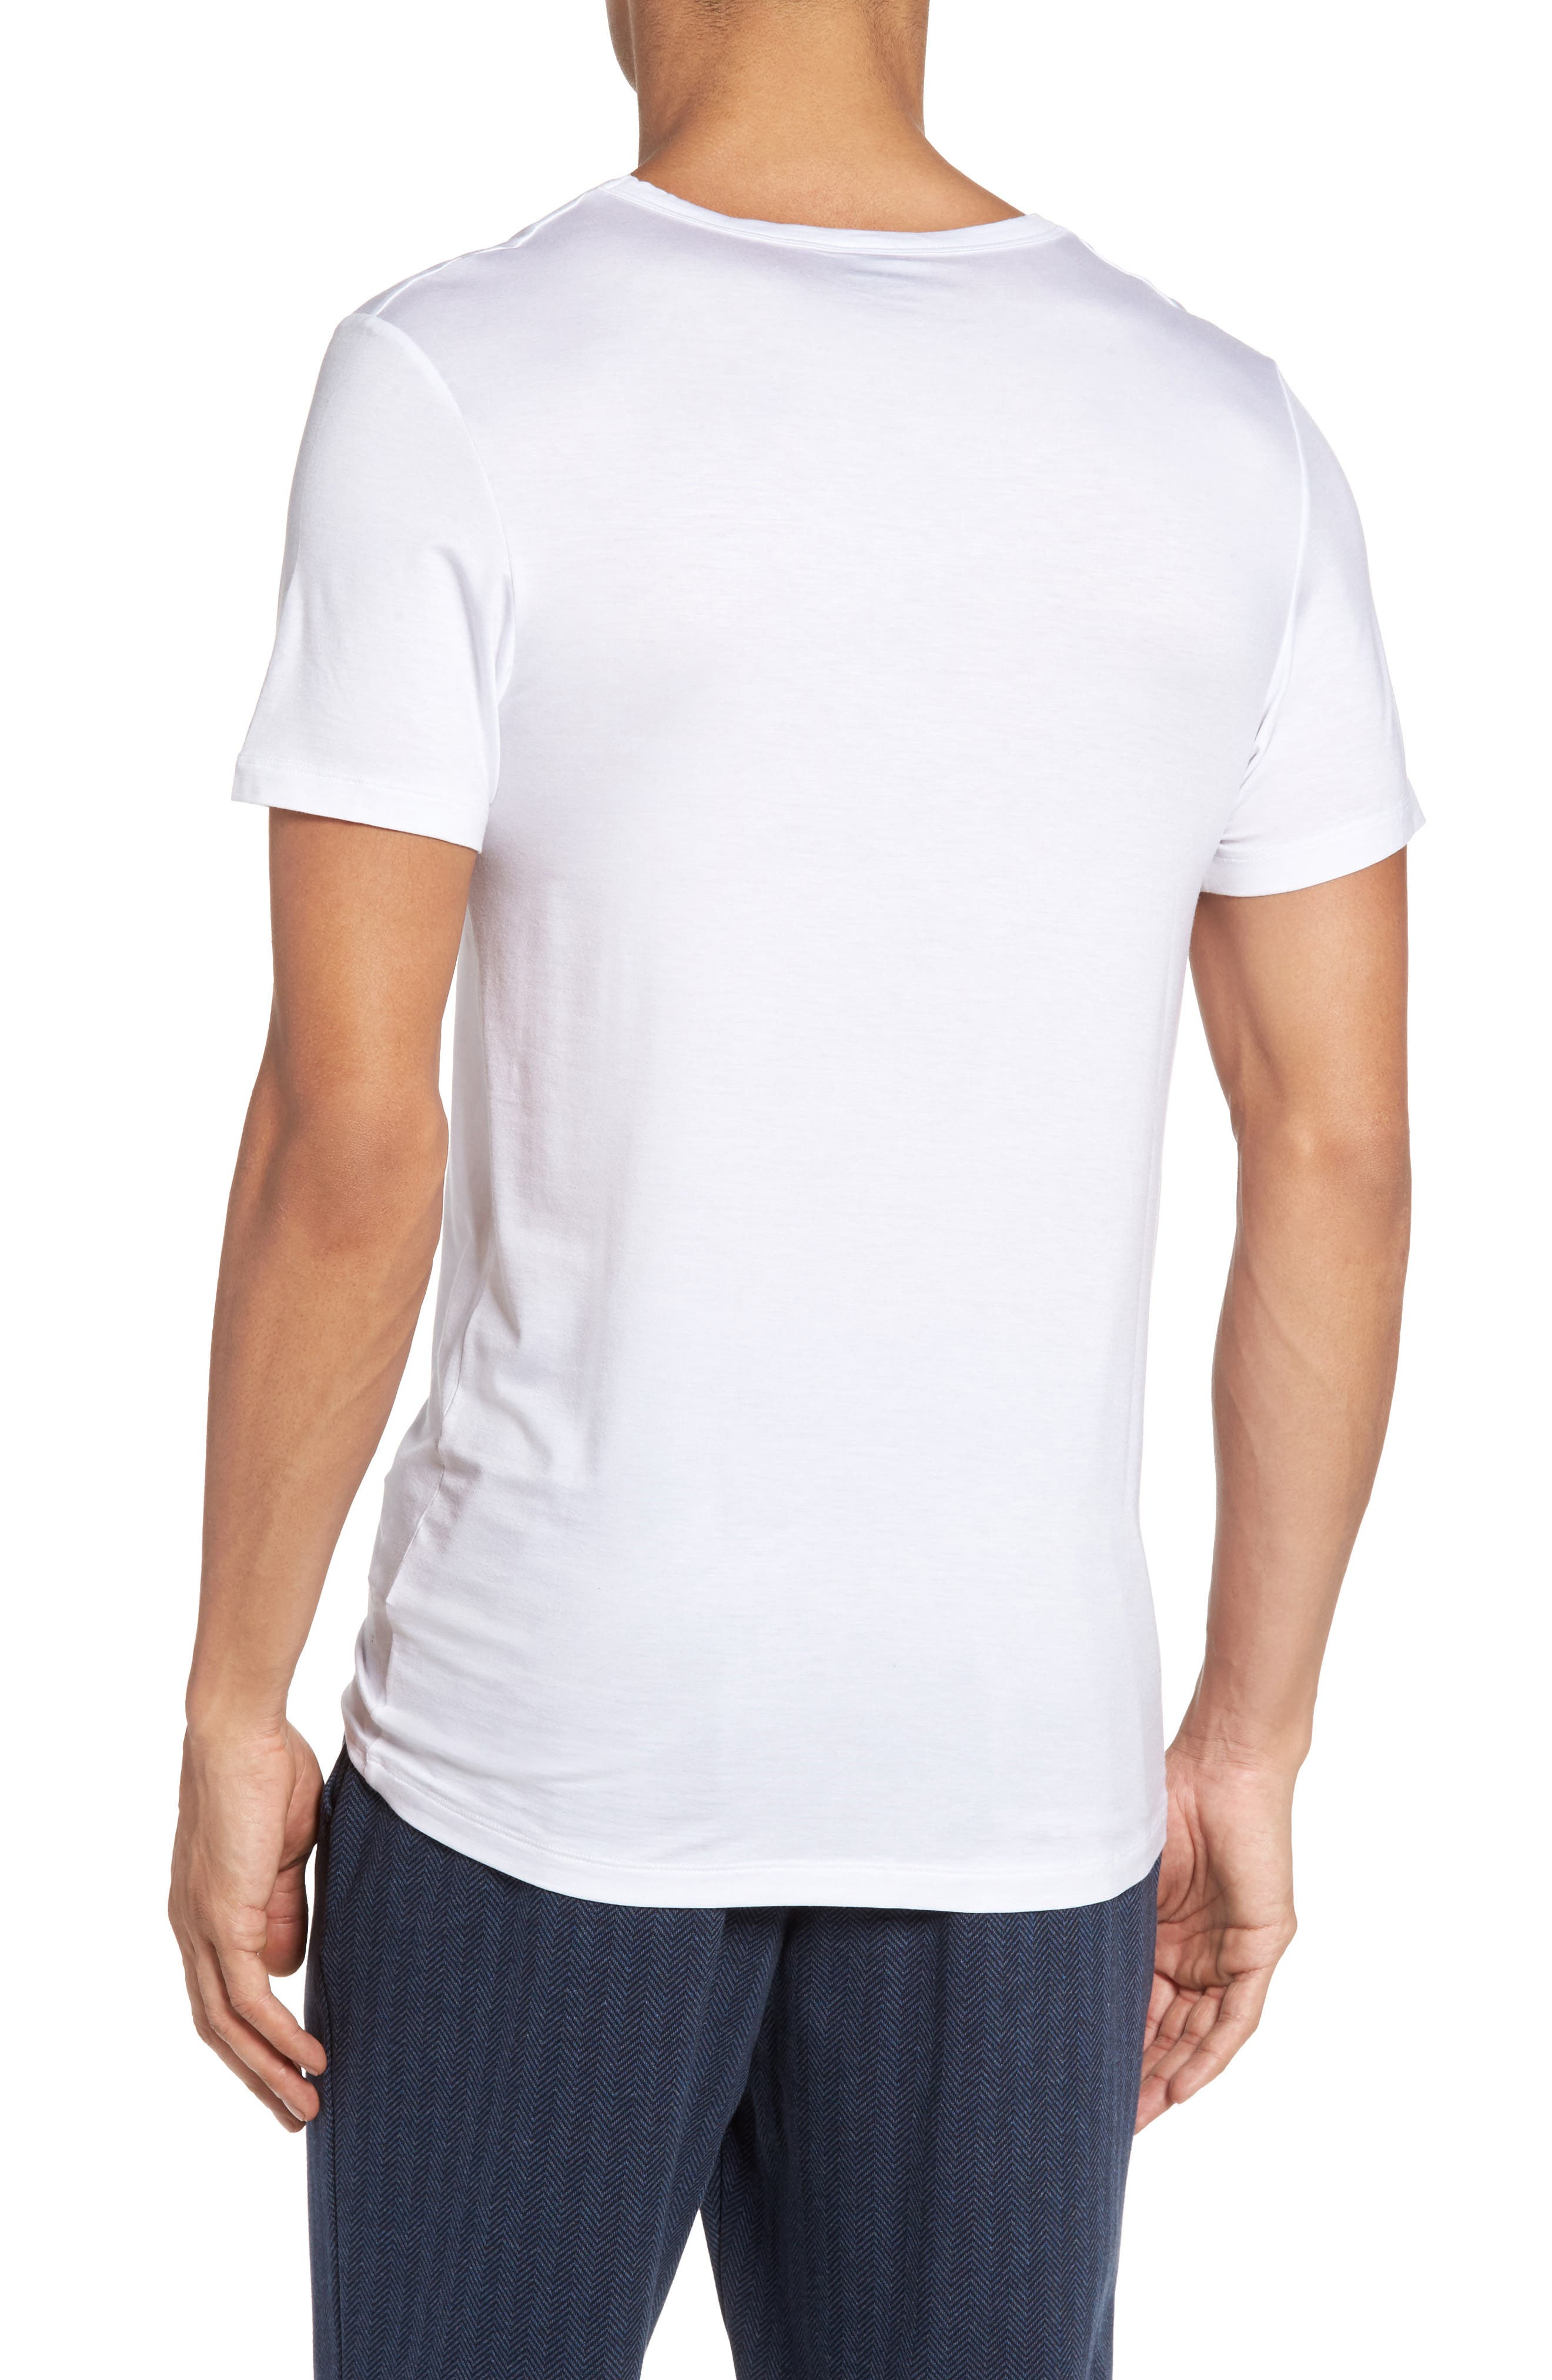 SeaCell<sup>®</sup> Blend T-Shirt,                             Alternate thumbnail 2, color,                             White